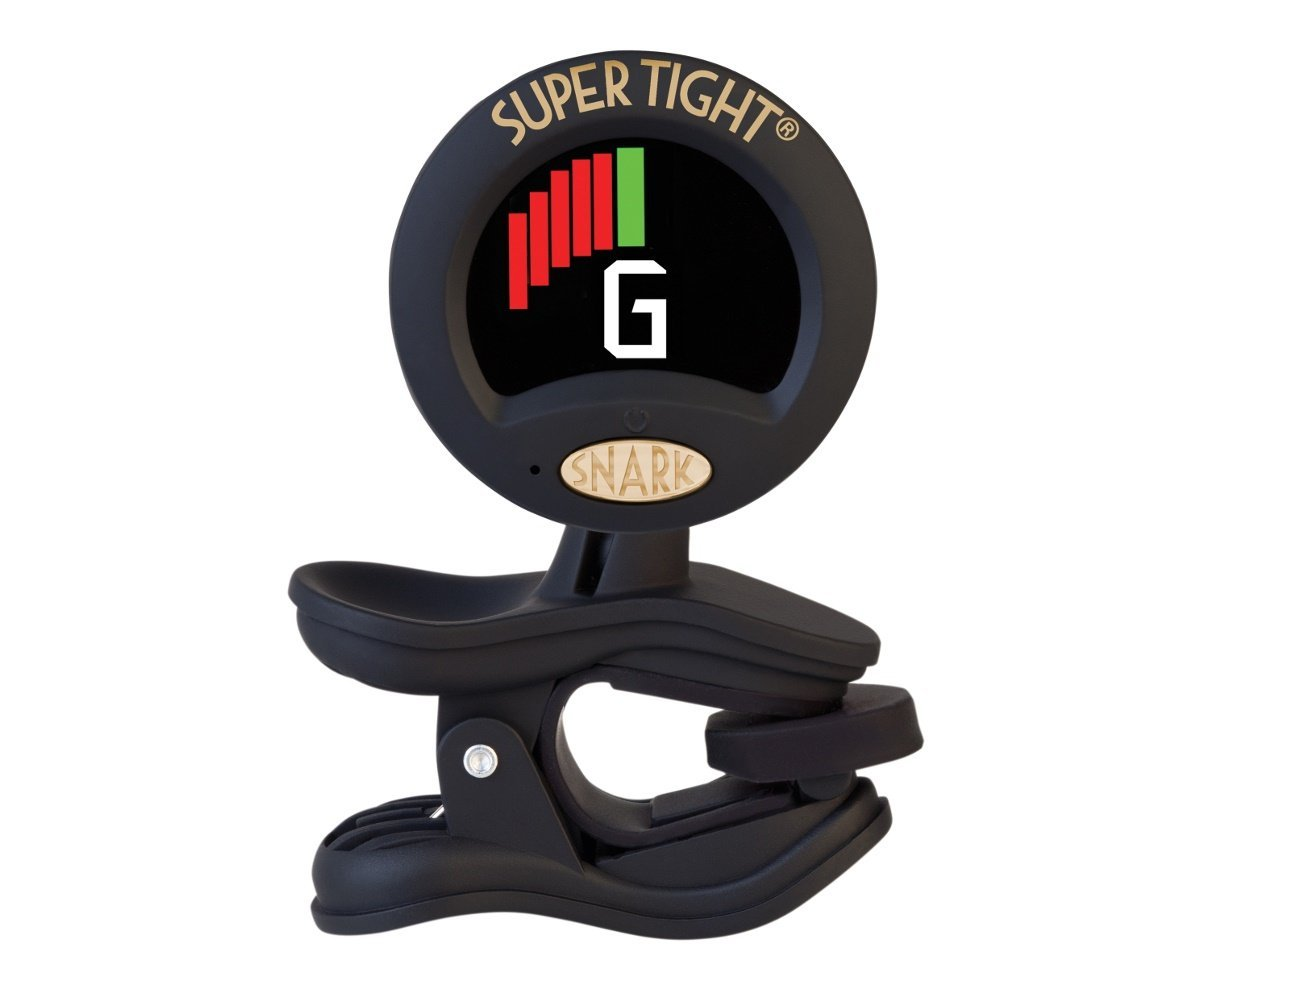 Snark Super Tight Chromatic Instrument Tuner - Black/Gold